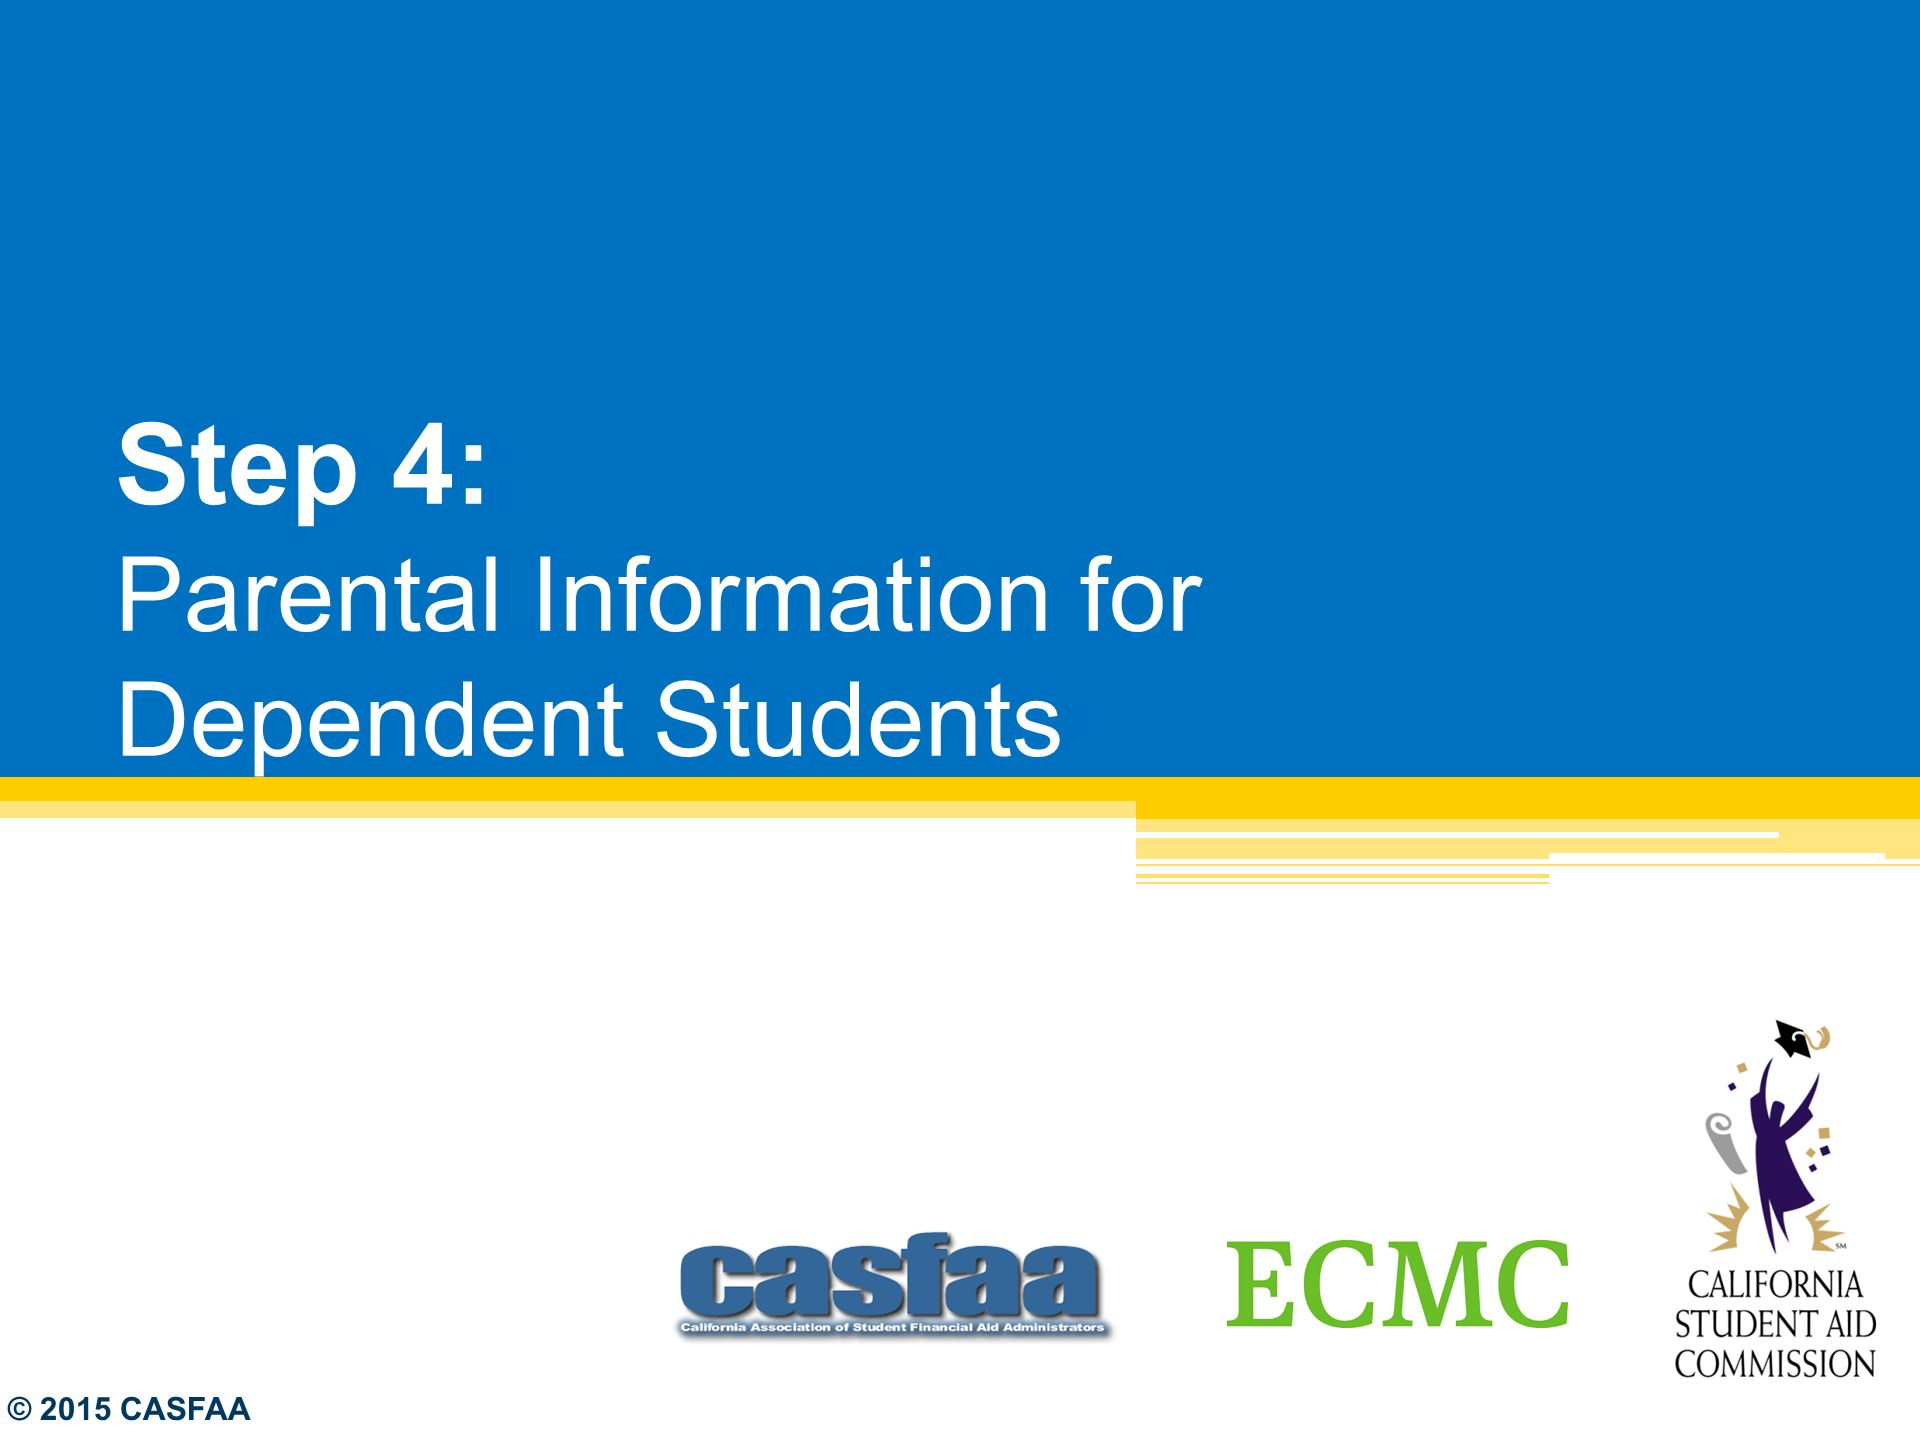 How To File Taxes Free Image Step 4: Parentalrmation For Dependent Students  Studentloaninterestdeduction